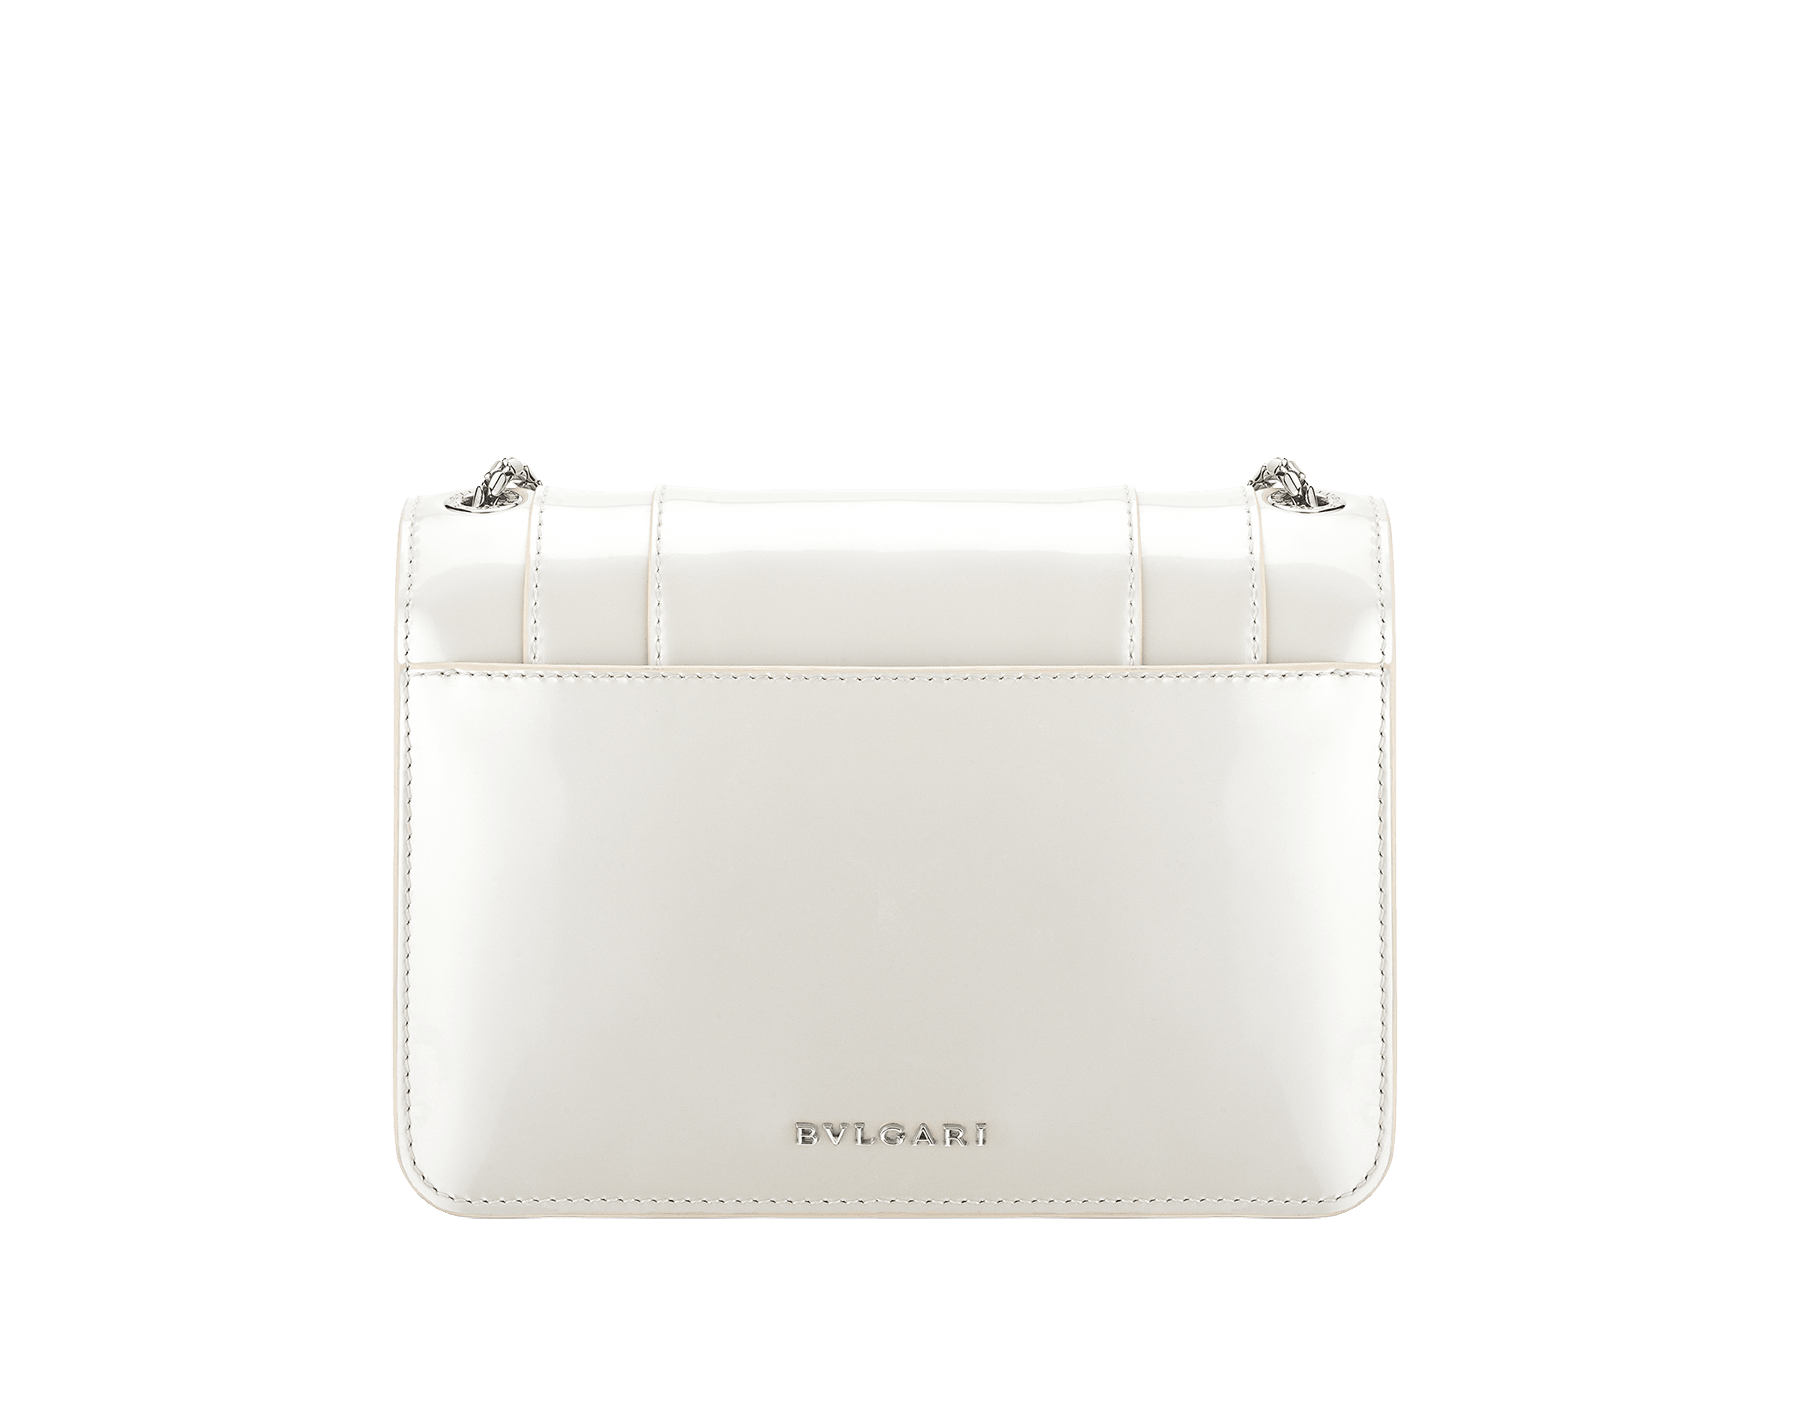 """Serpenti Forever"" crossbody bag in white agate calf leather with a varnished and pearled effect. Iconic snakehead closure in light gold plated brass enriched with black and pearled white agate enamel and black onyx eyes. 1082-VCL image 3"